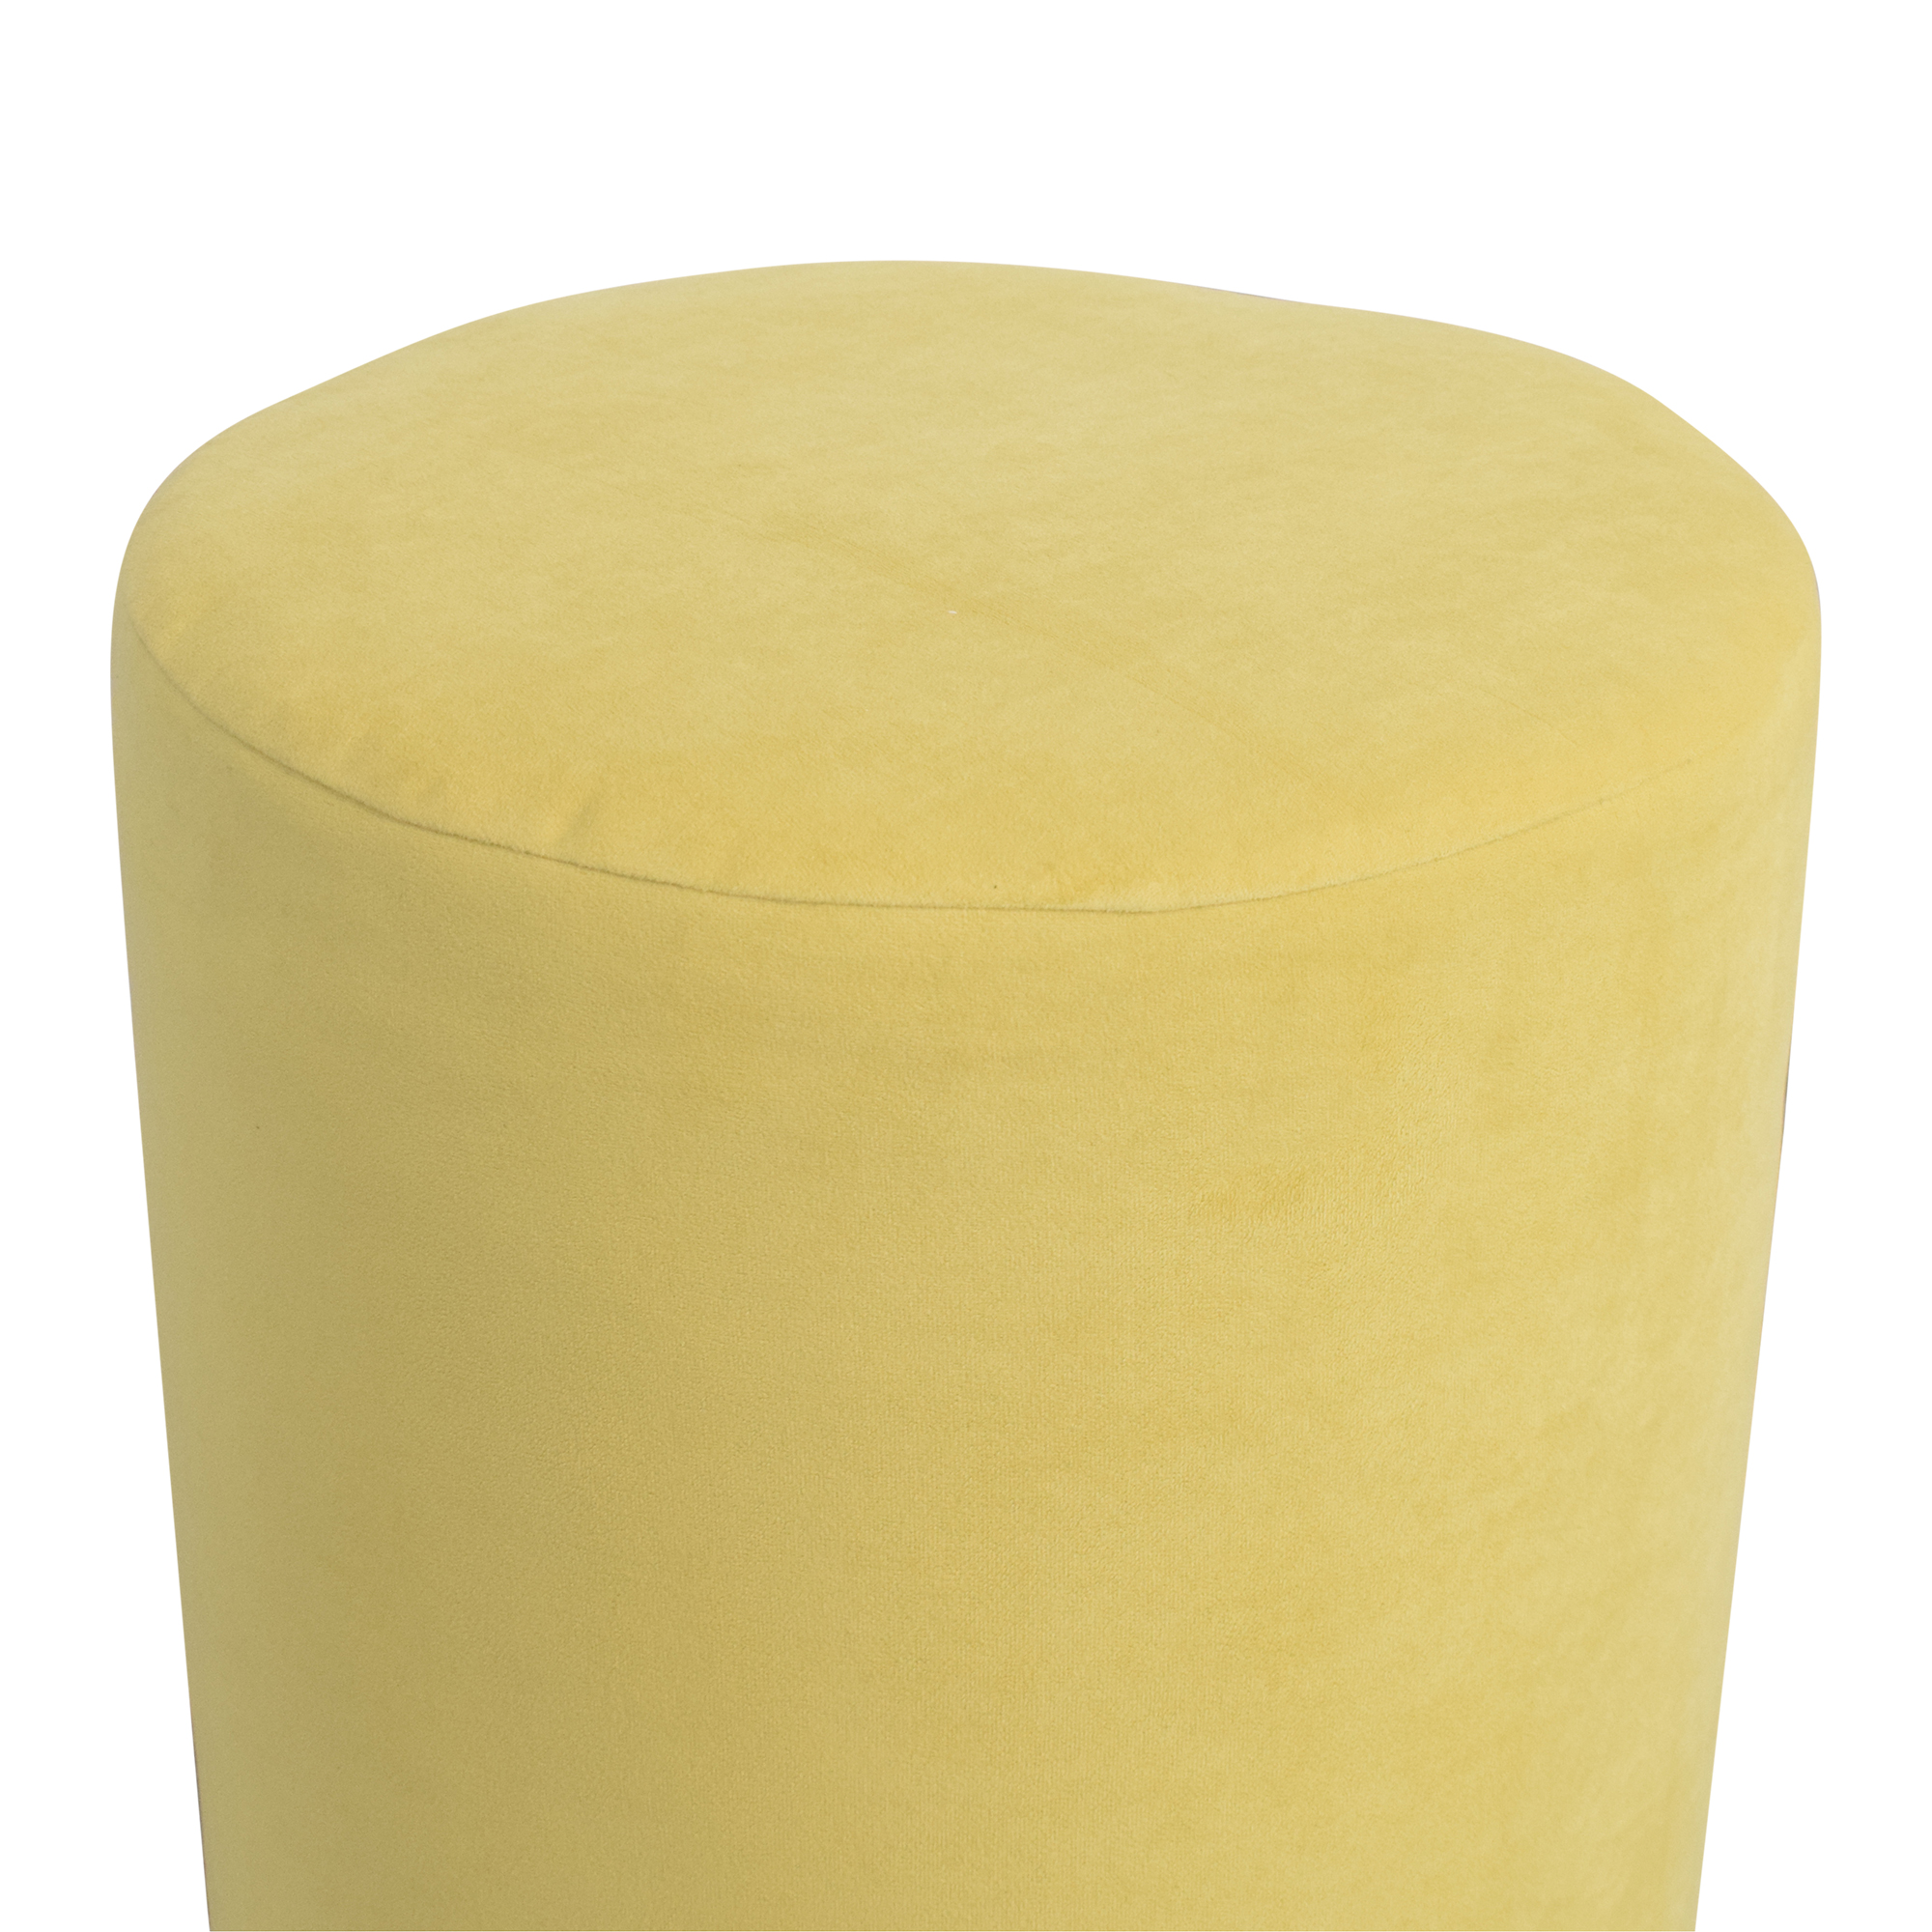 The Inside The Inside Drum Ottoman for sale